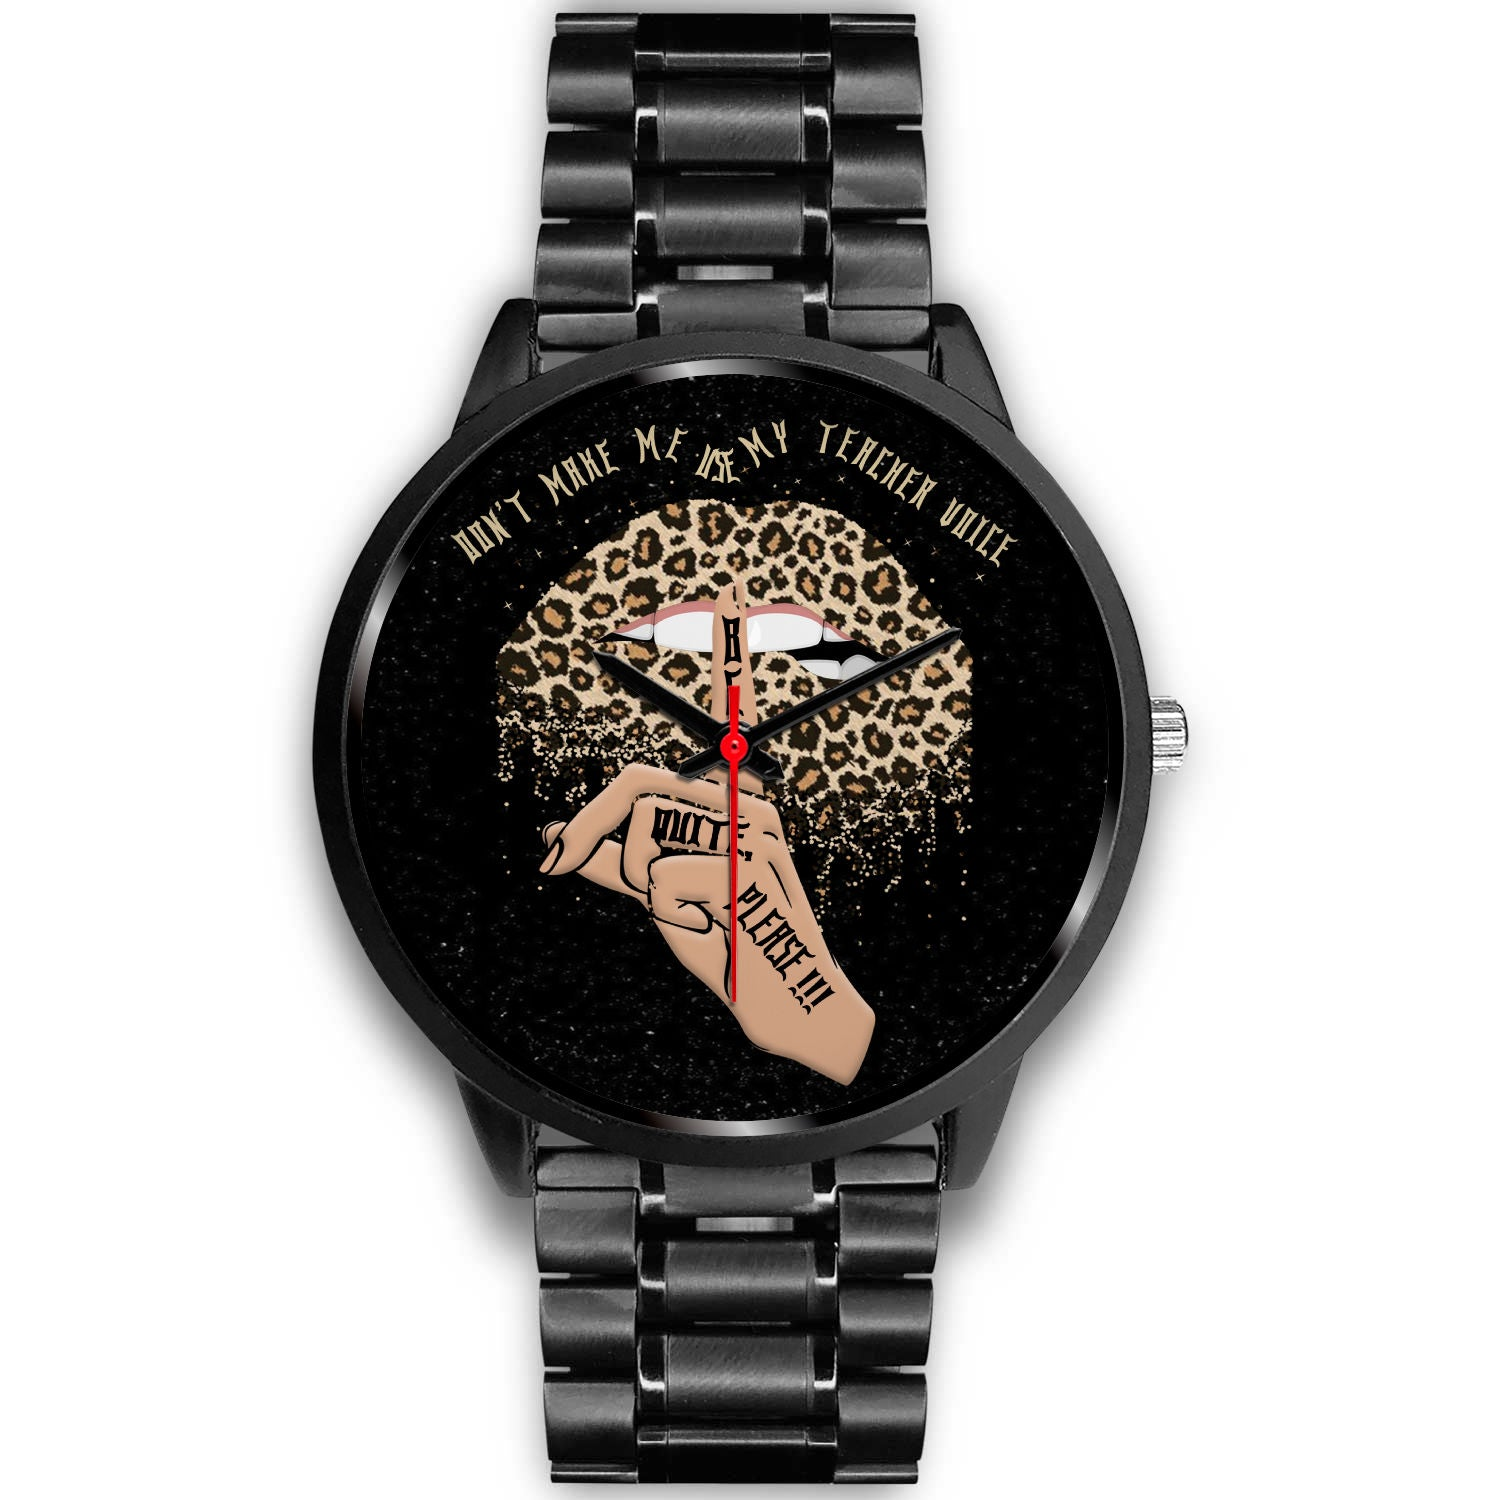 VIRA Leopard Sexy Lips Black Stainless Steel Watch For Awesome Teachers